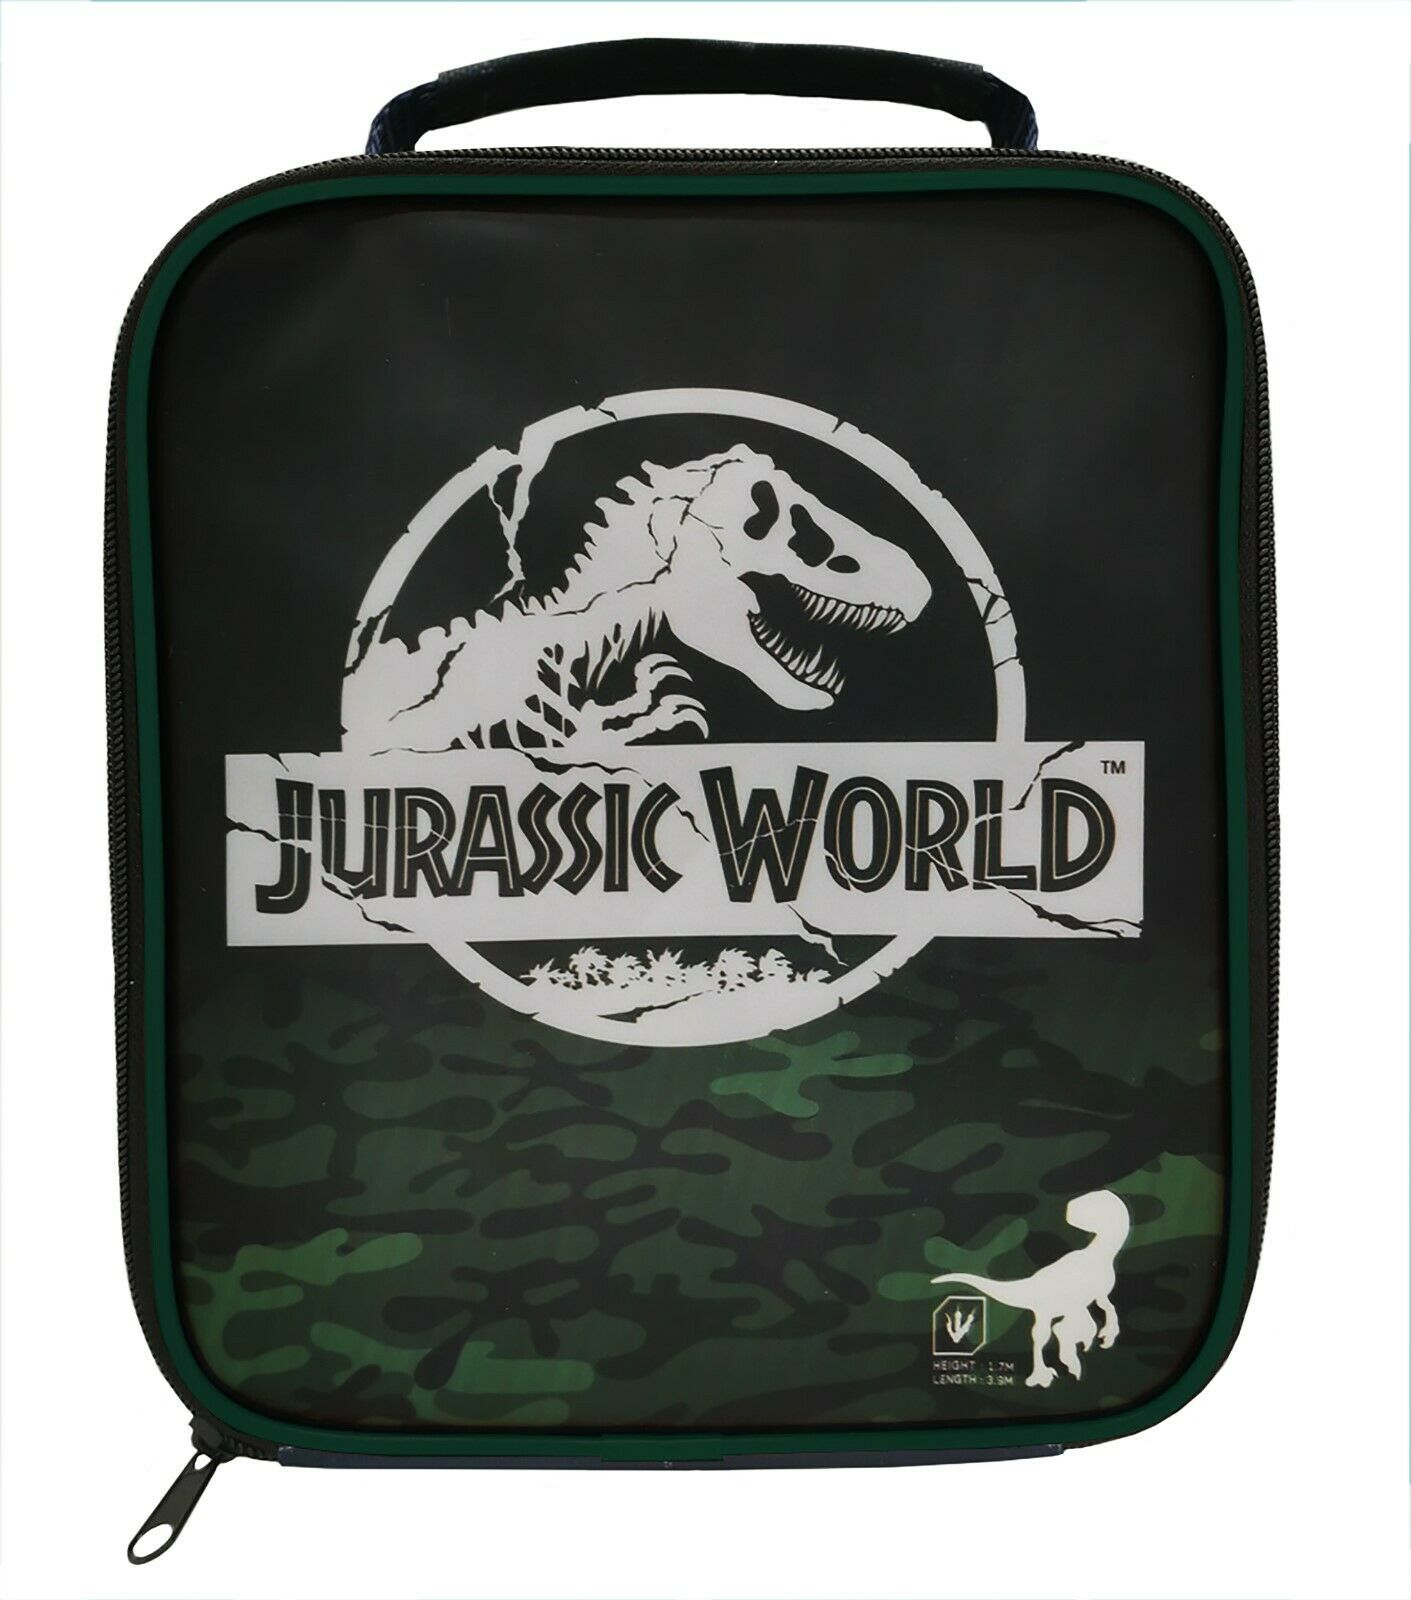 Jurassic World Green School Premium Lunch Bag Insulated